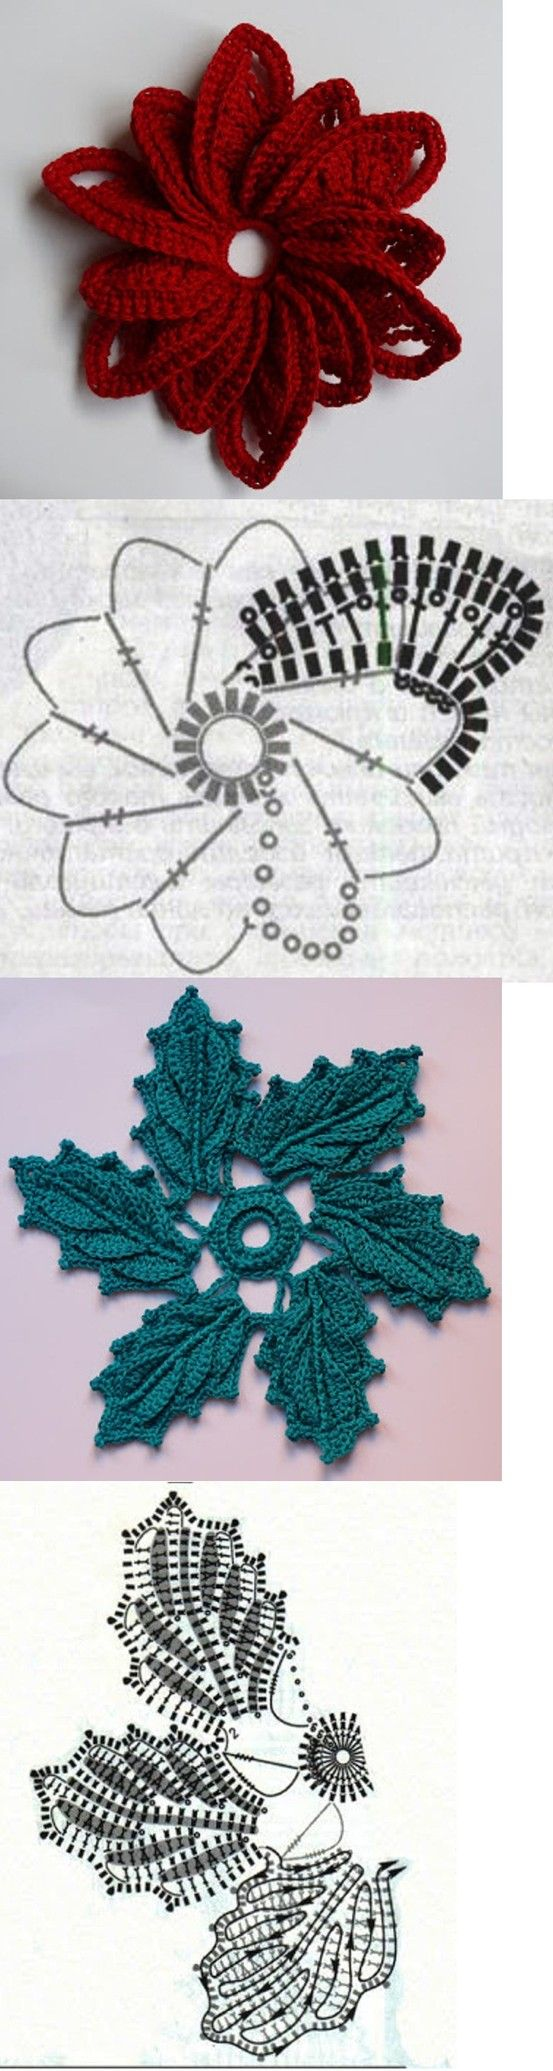 leaf patterns in Irish Crochet